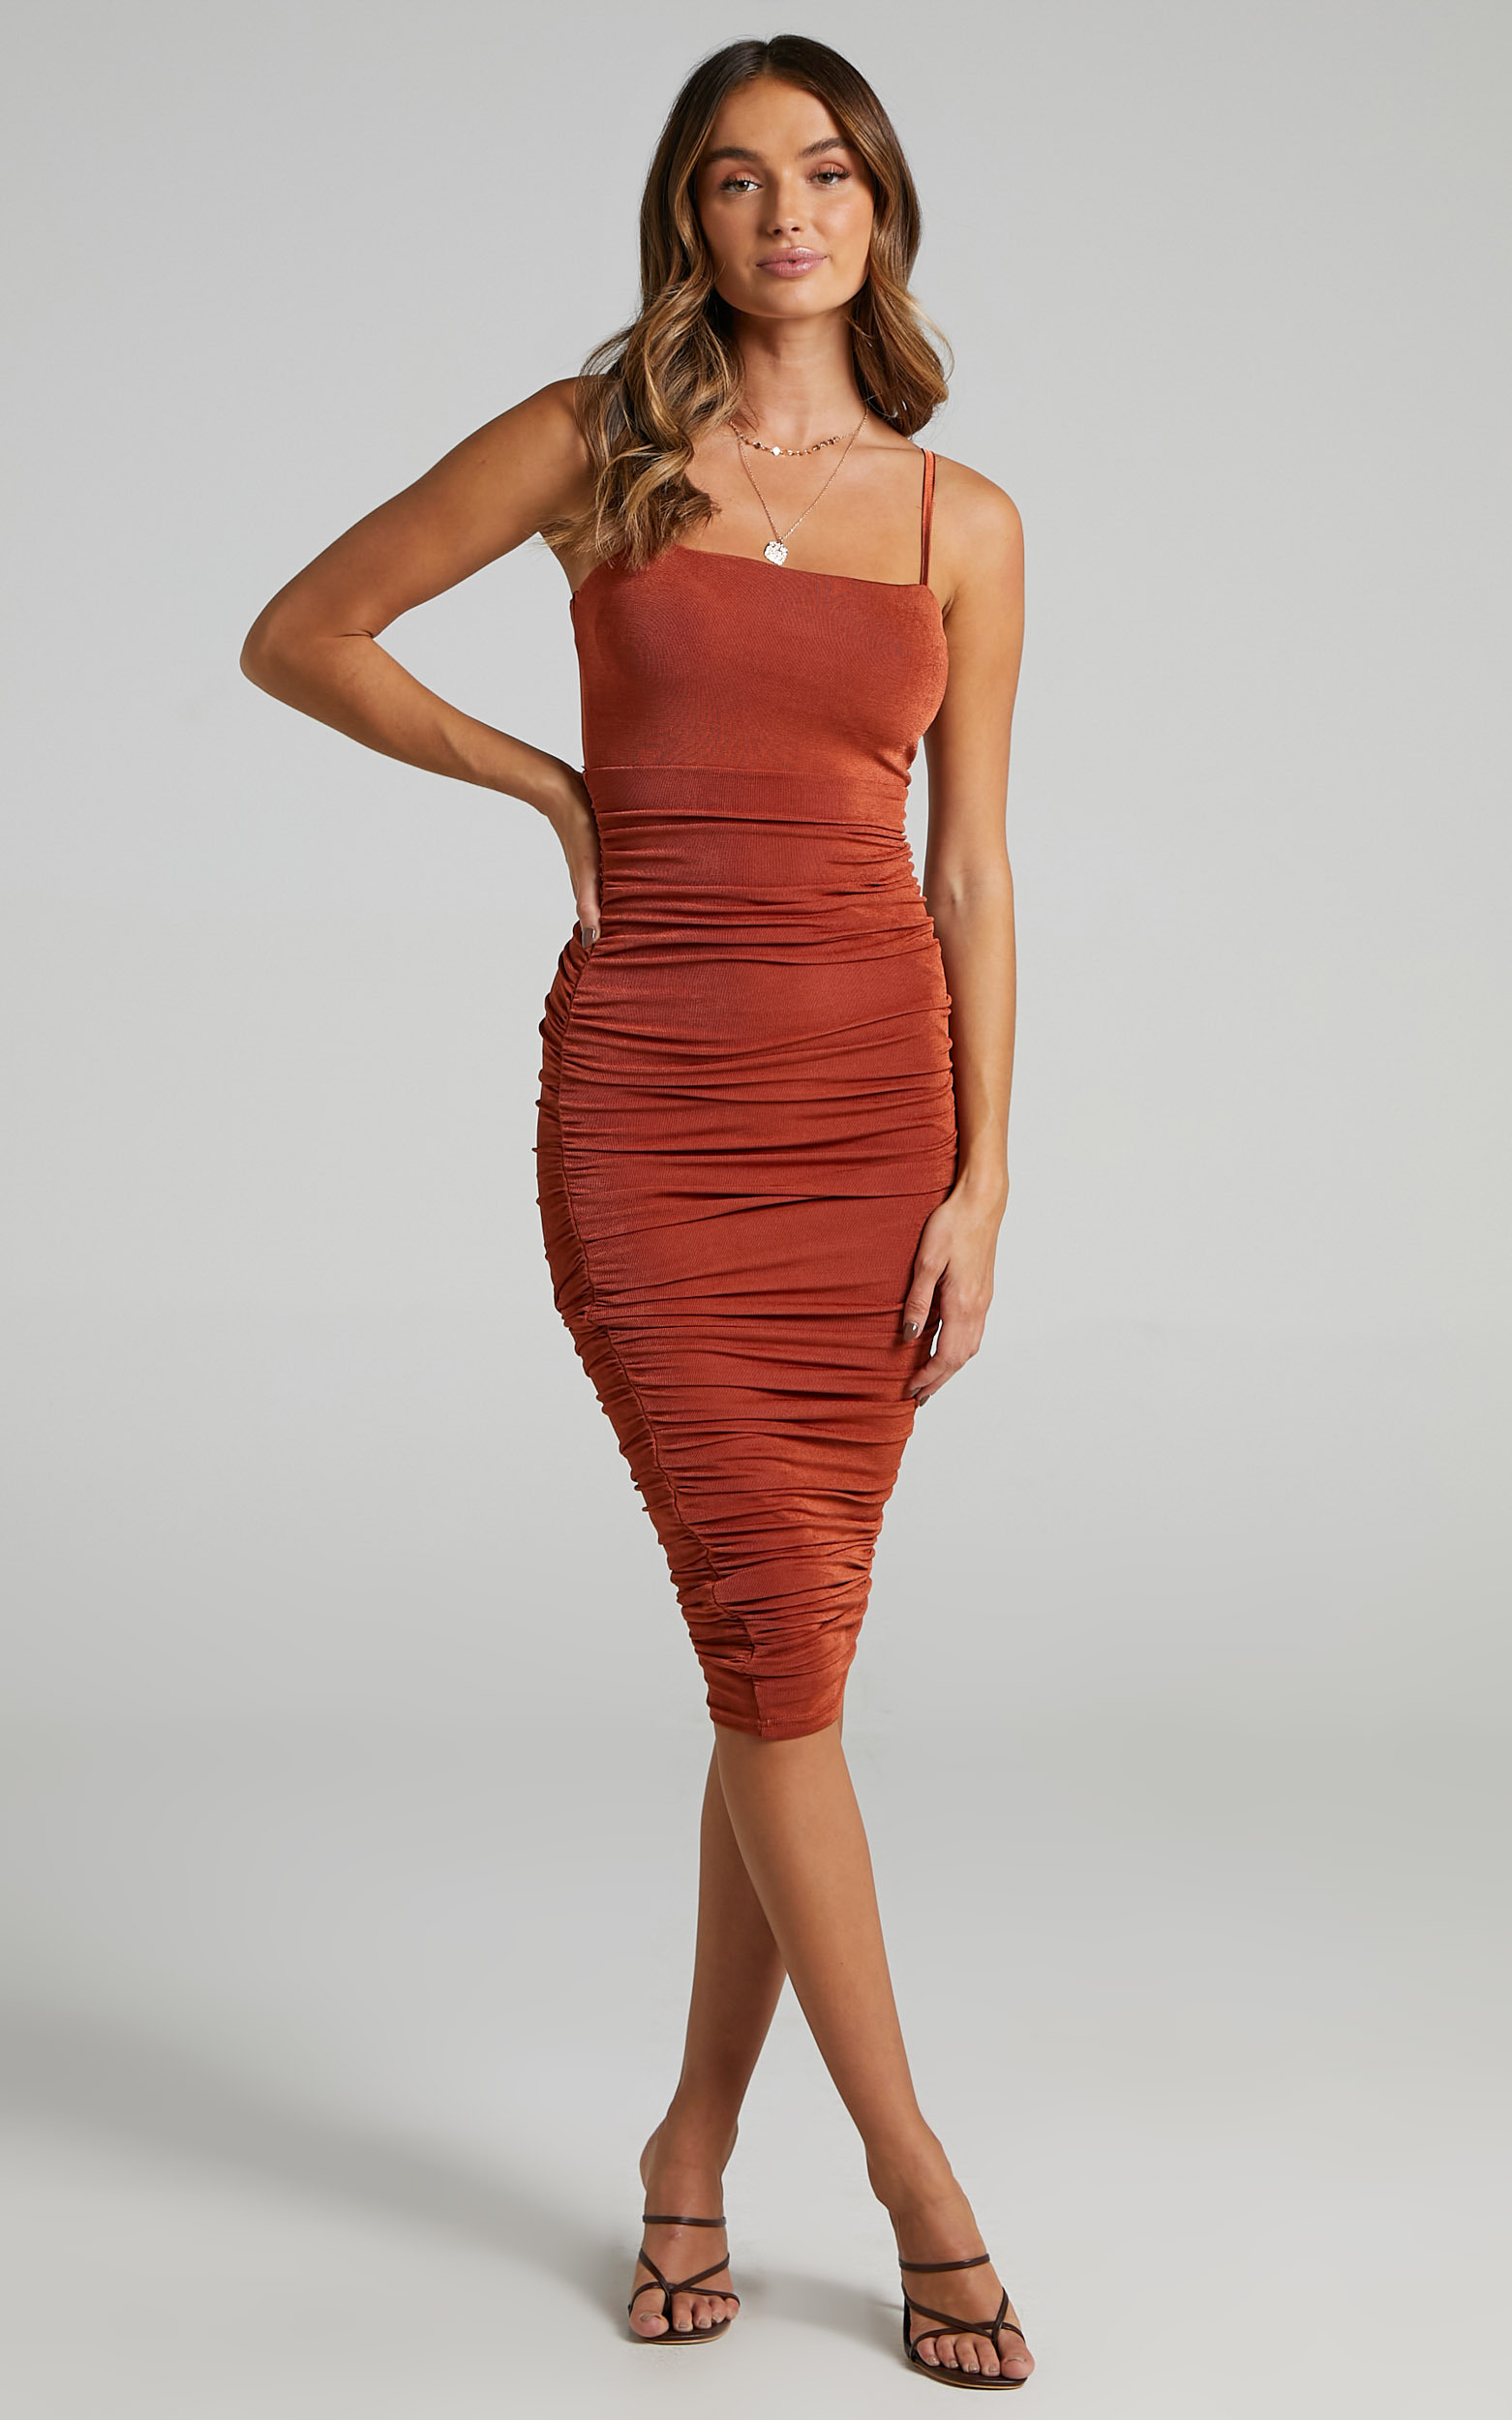 Commit To Me Maxi Dress in Rust - 04, BRN1, hi-res image number null